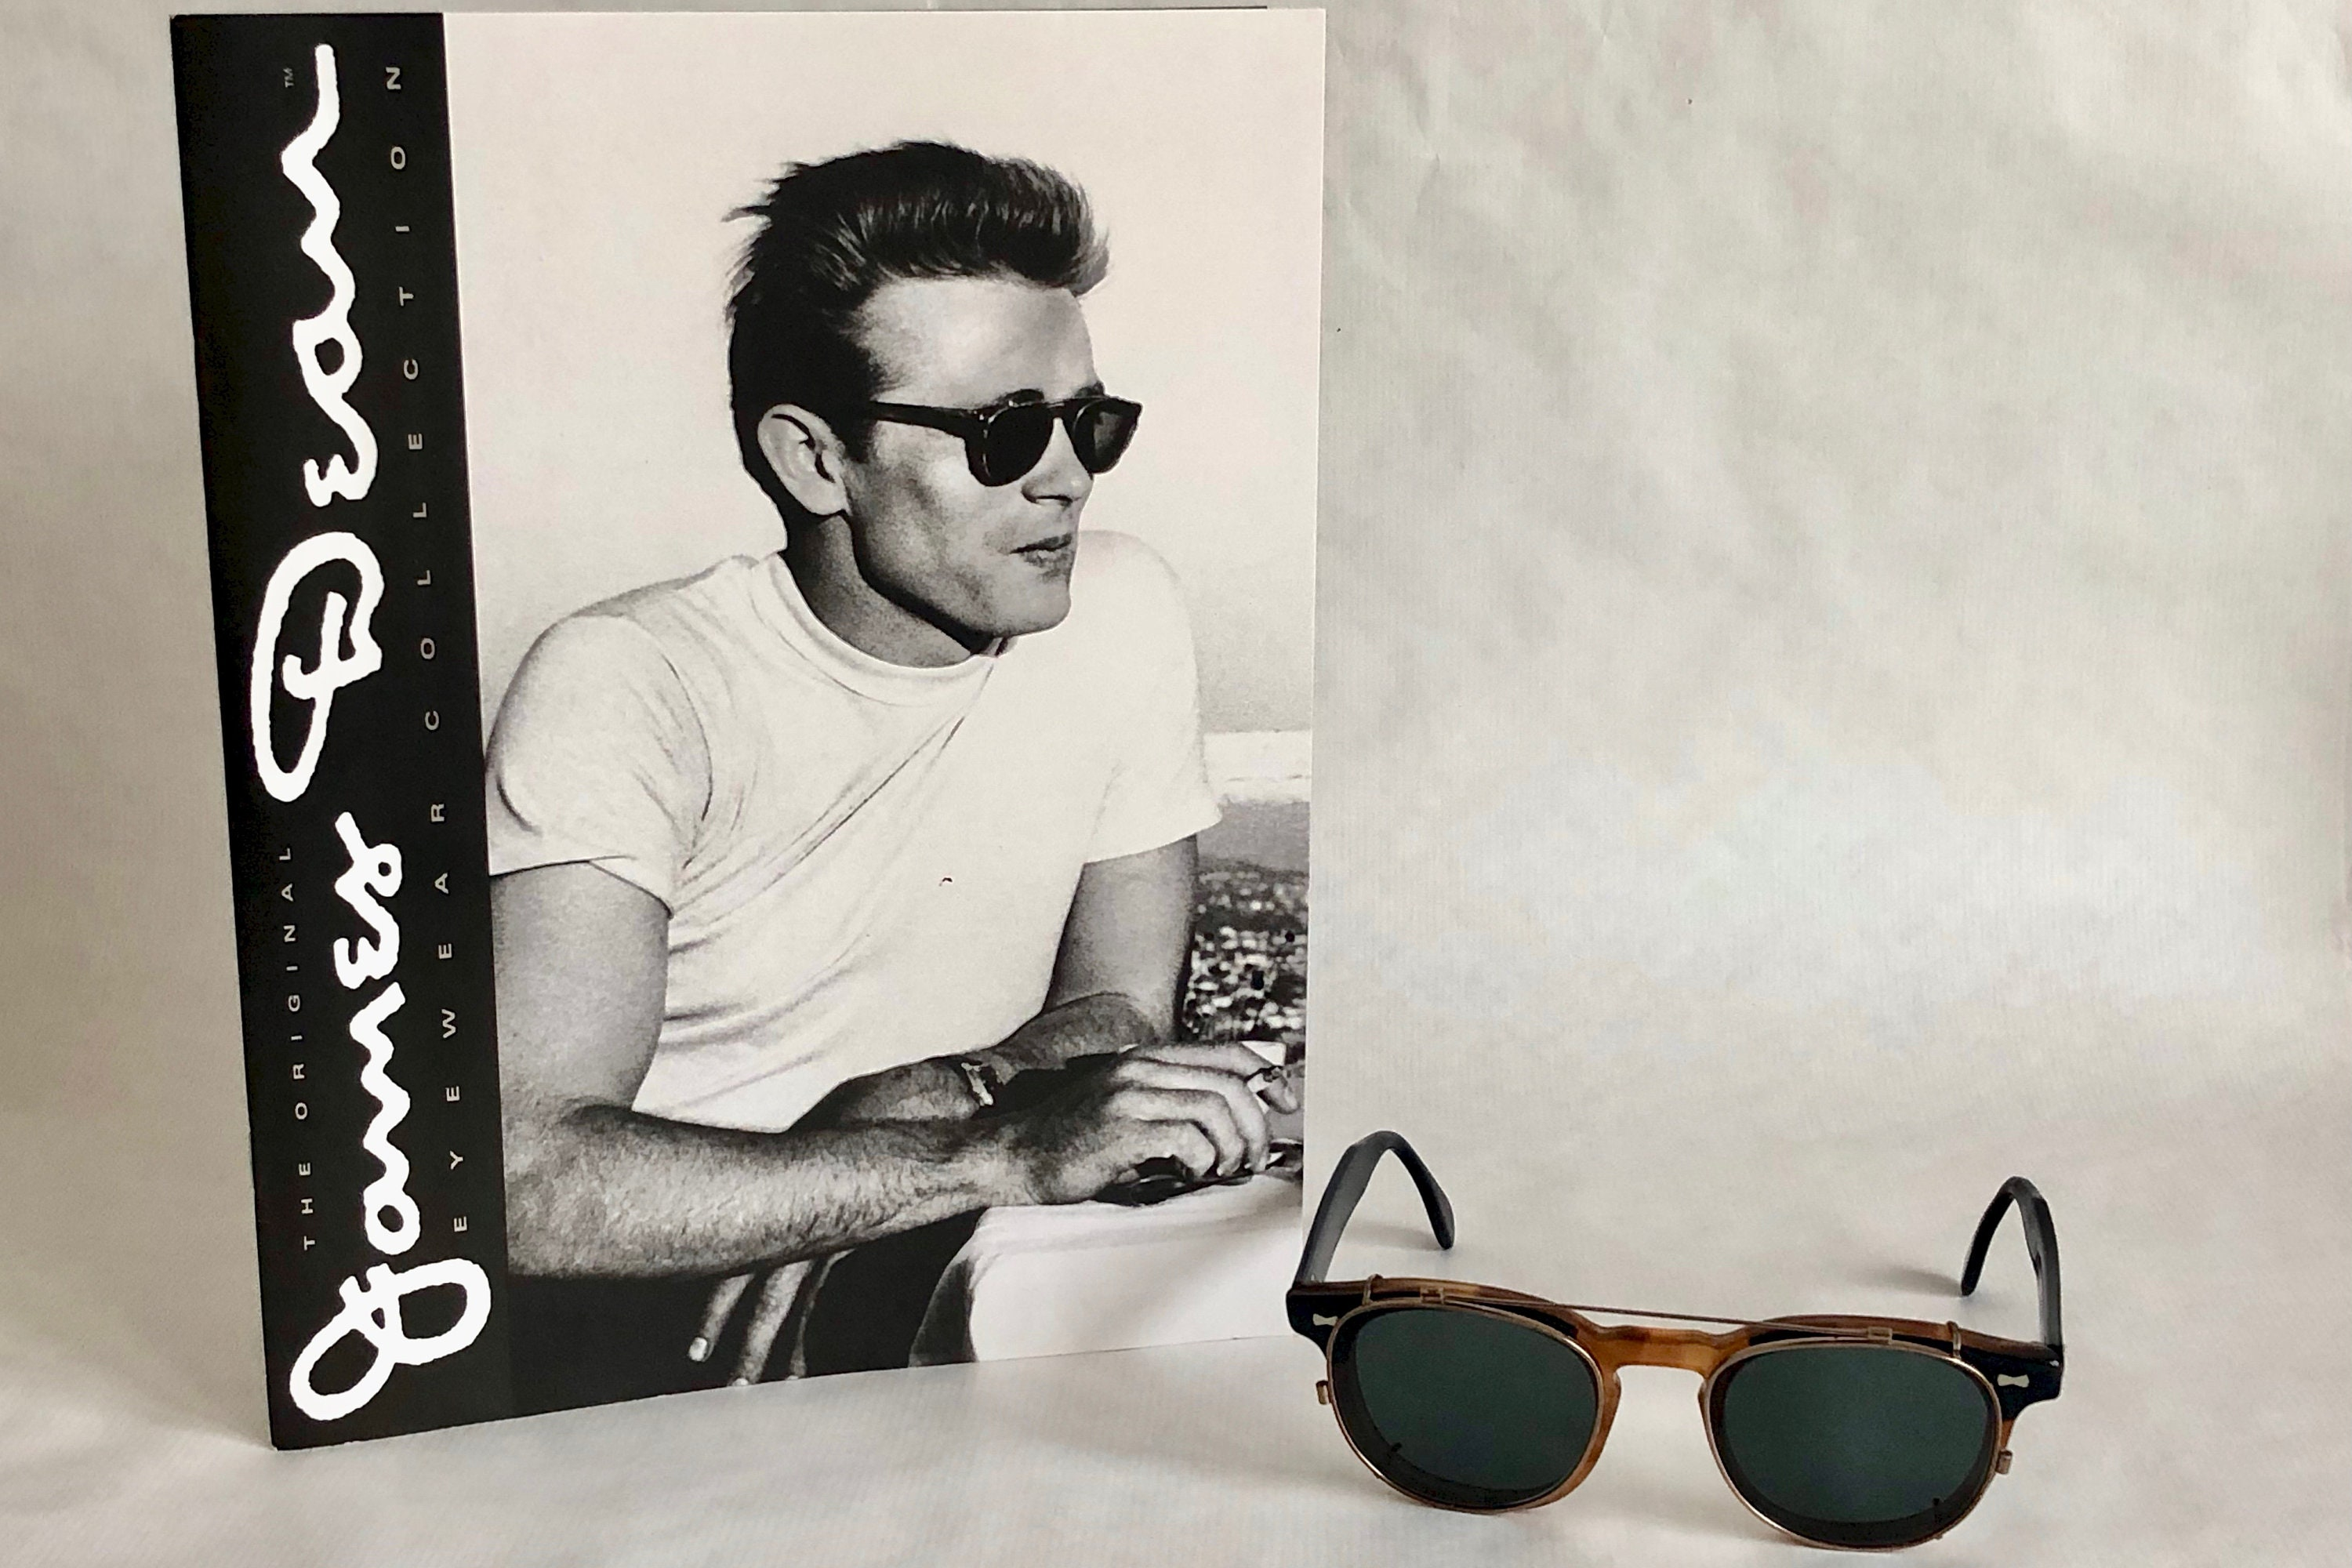 5899c7063c36 Shady Character NYC James Dean Vintage Sunglasses - including Shady  Character Catalogue